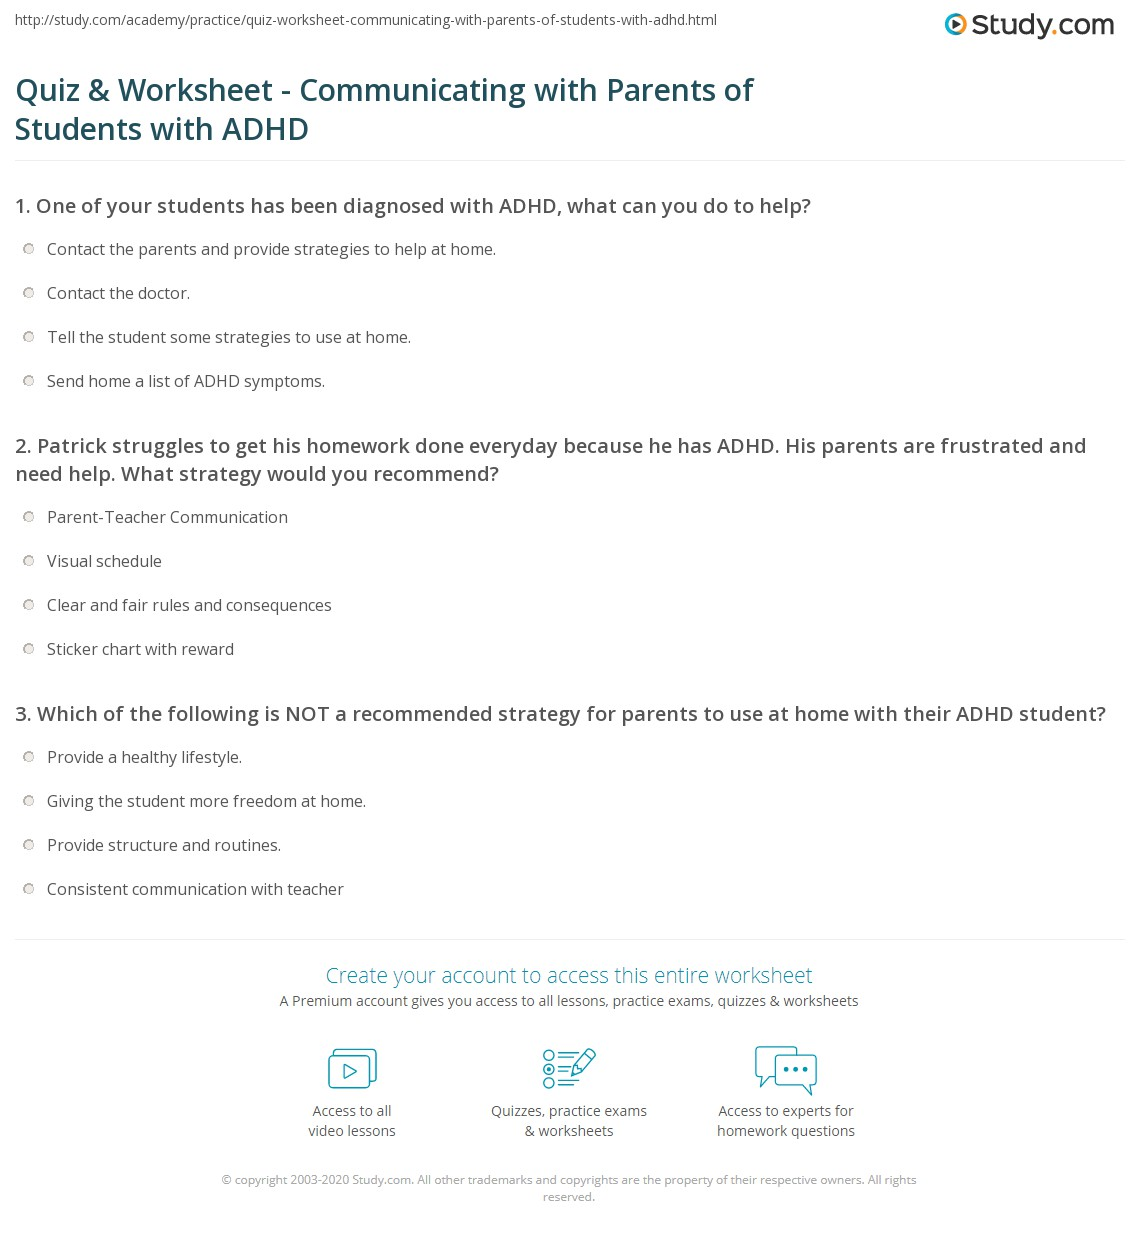 What Can Be Done To Help Parents Of >> Quiz Worksheet Communicating With Parents Of Students With Adhd